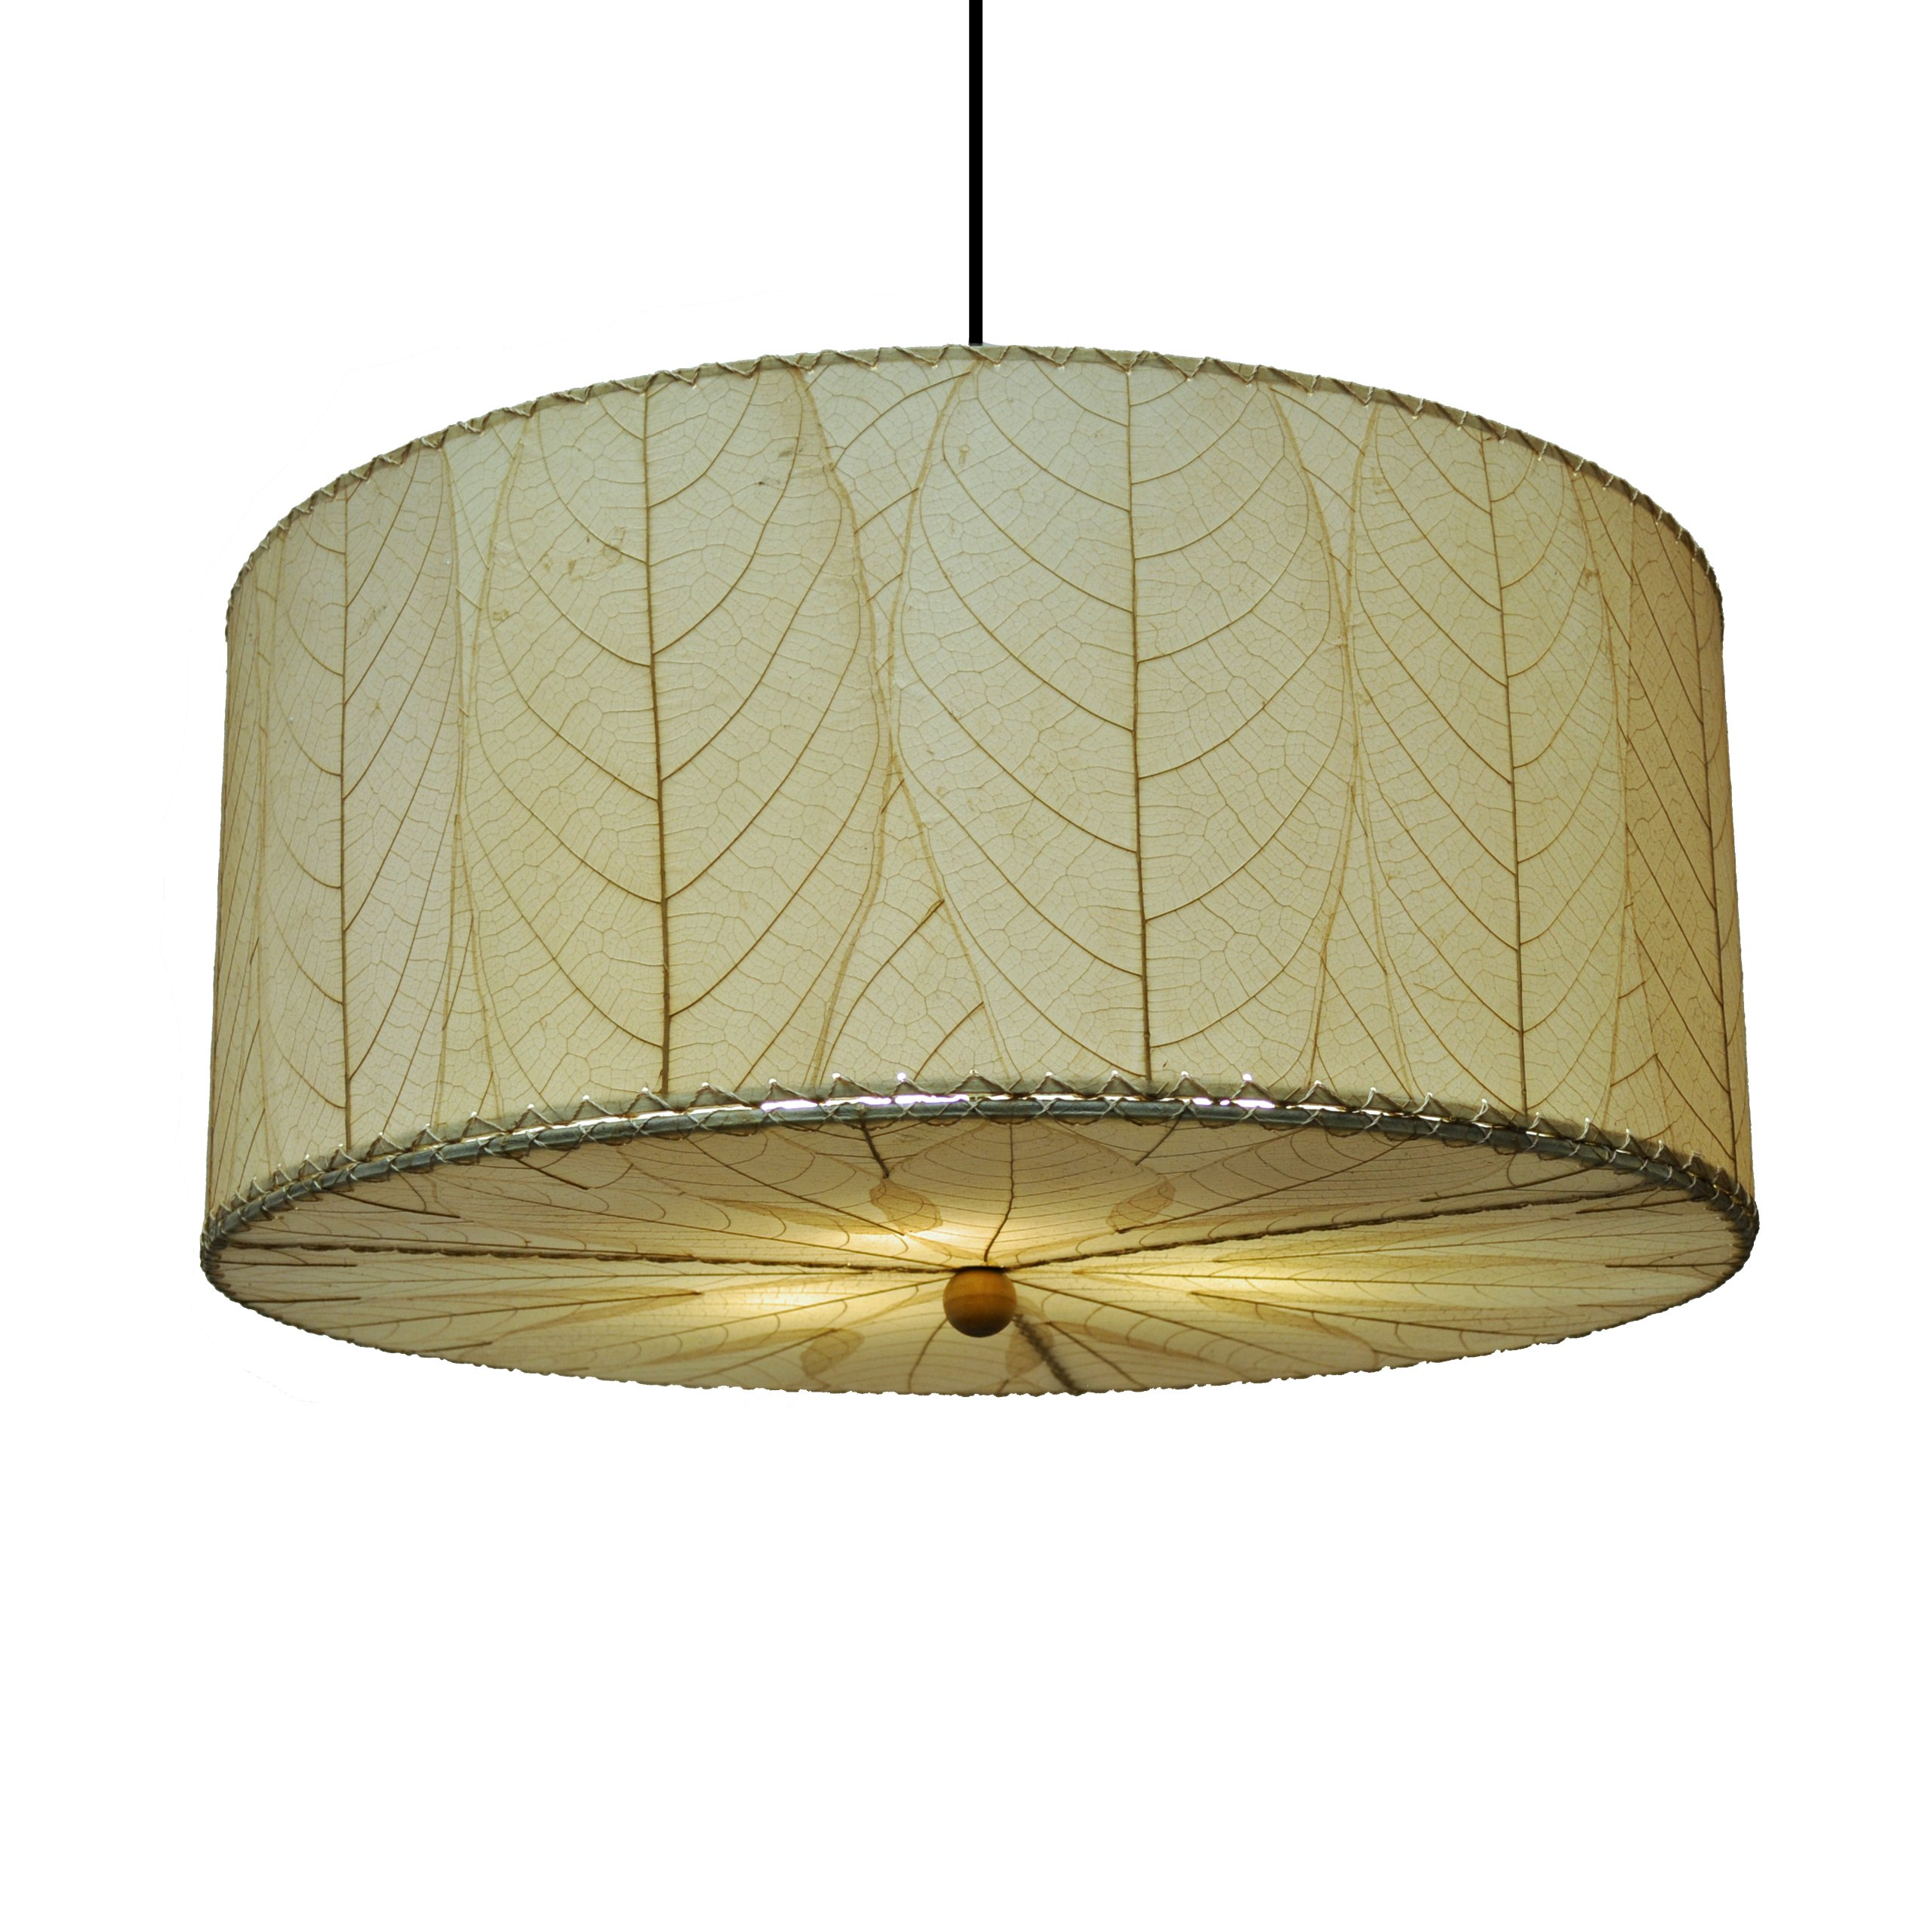 Eangee Home Designs 497 AN 3 Light Drum Large Pendant Light by Eangee Home Designs